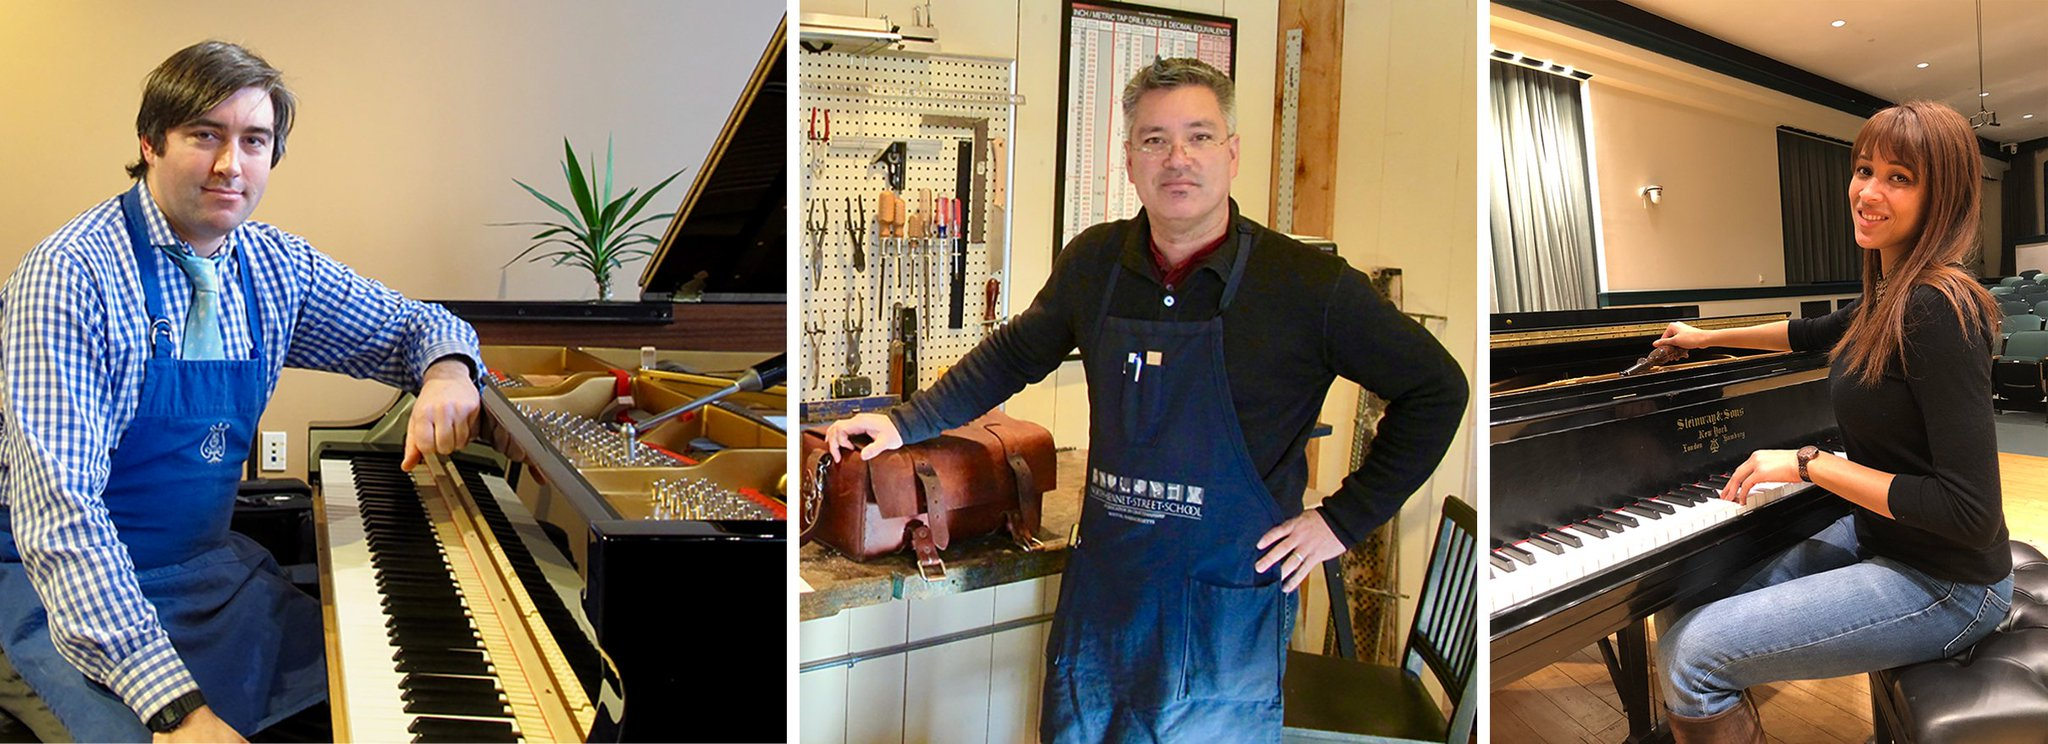 @NBSSboston @PianoBuyer follows the path of 3 #PianoTechnology #NBSSalumni – Erik Diehl PT '08, PA '09, Sean Mallari PA '06, and Renée Kelsey PT '17, PA '18 – who've found being a #pianotechnician provides passion & fulfillment they hadn't found in previous careers. hubs.ly/H0hqp5s0